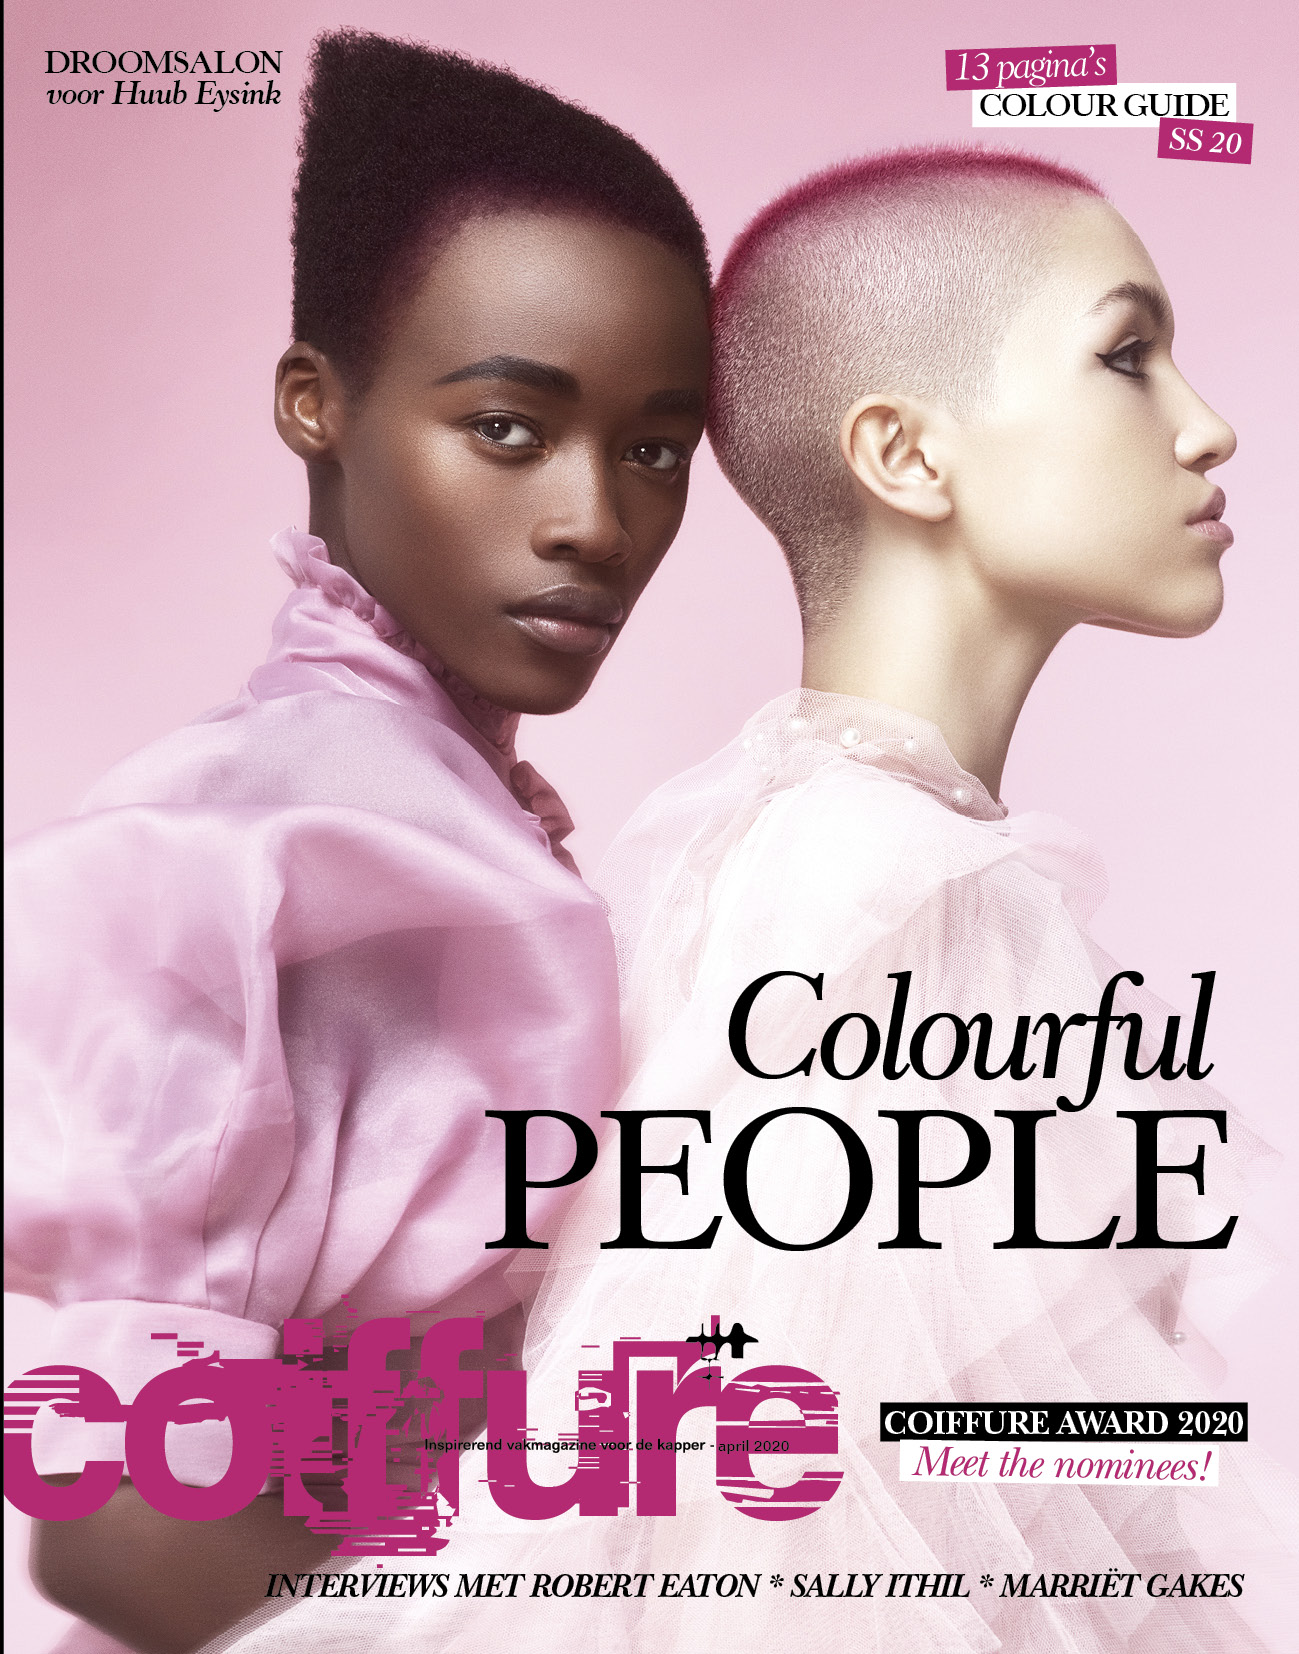 COIFFURE mrt 2020: Colourful People